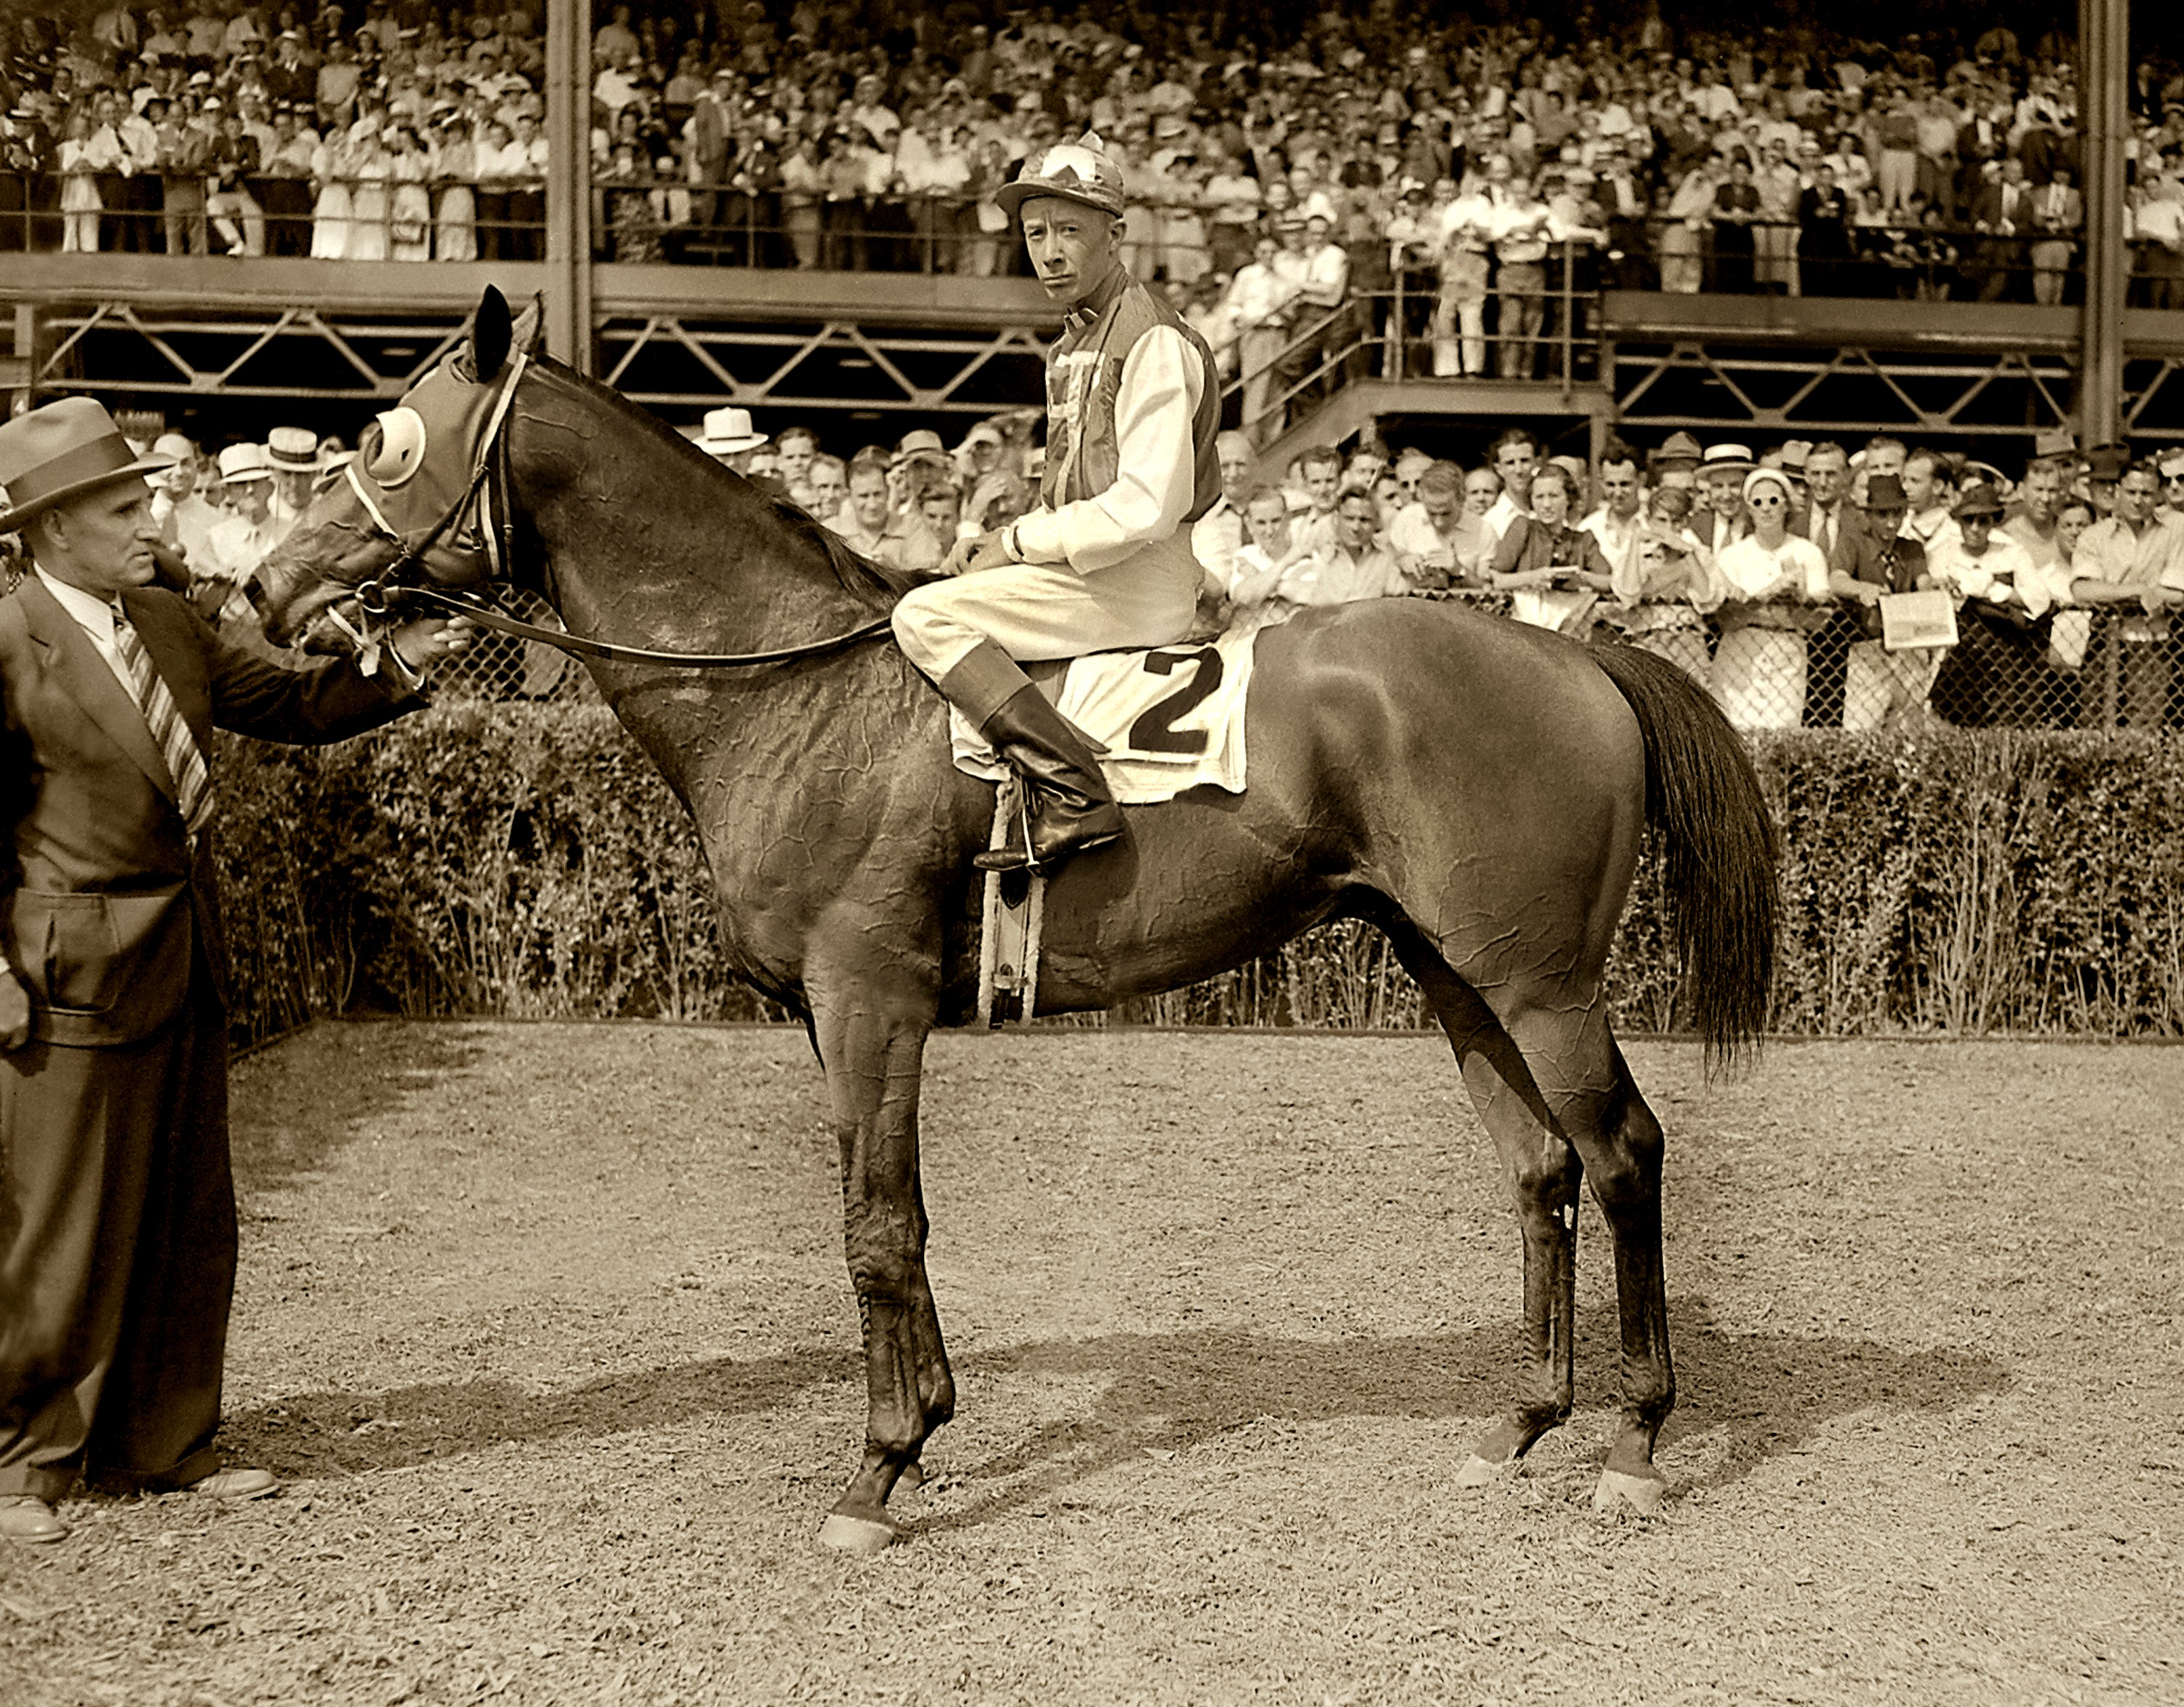 Seabiscuit (Red Pollard up) in the winner's circle with trainer Tom Smith for the 1937 Yonkers Handicap at Empire City (Keeneland Library Morgan Collection/Museum Collection)